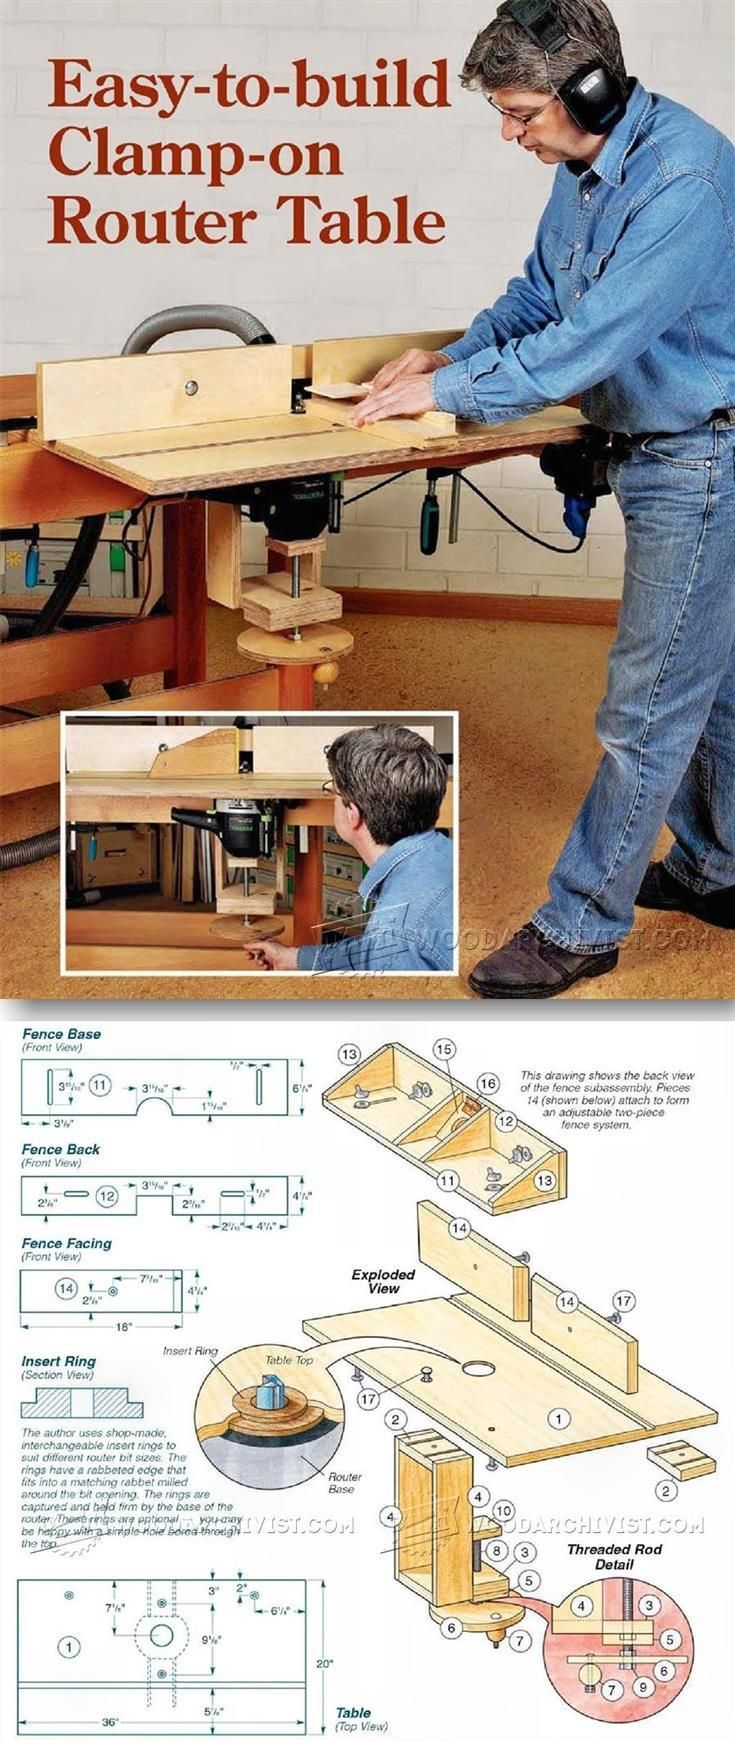 Best 25 festool router table ideas on pinterest woodworking workbench router table plans router tips jigs and fixtures woodarchivist greentooth Images